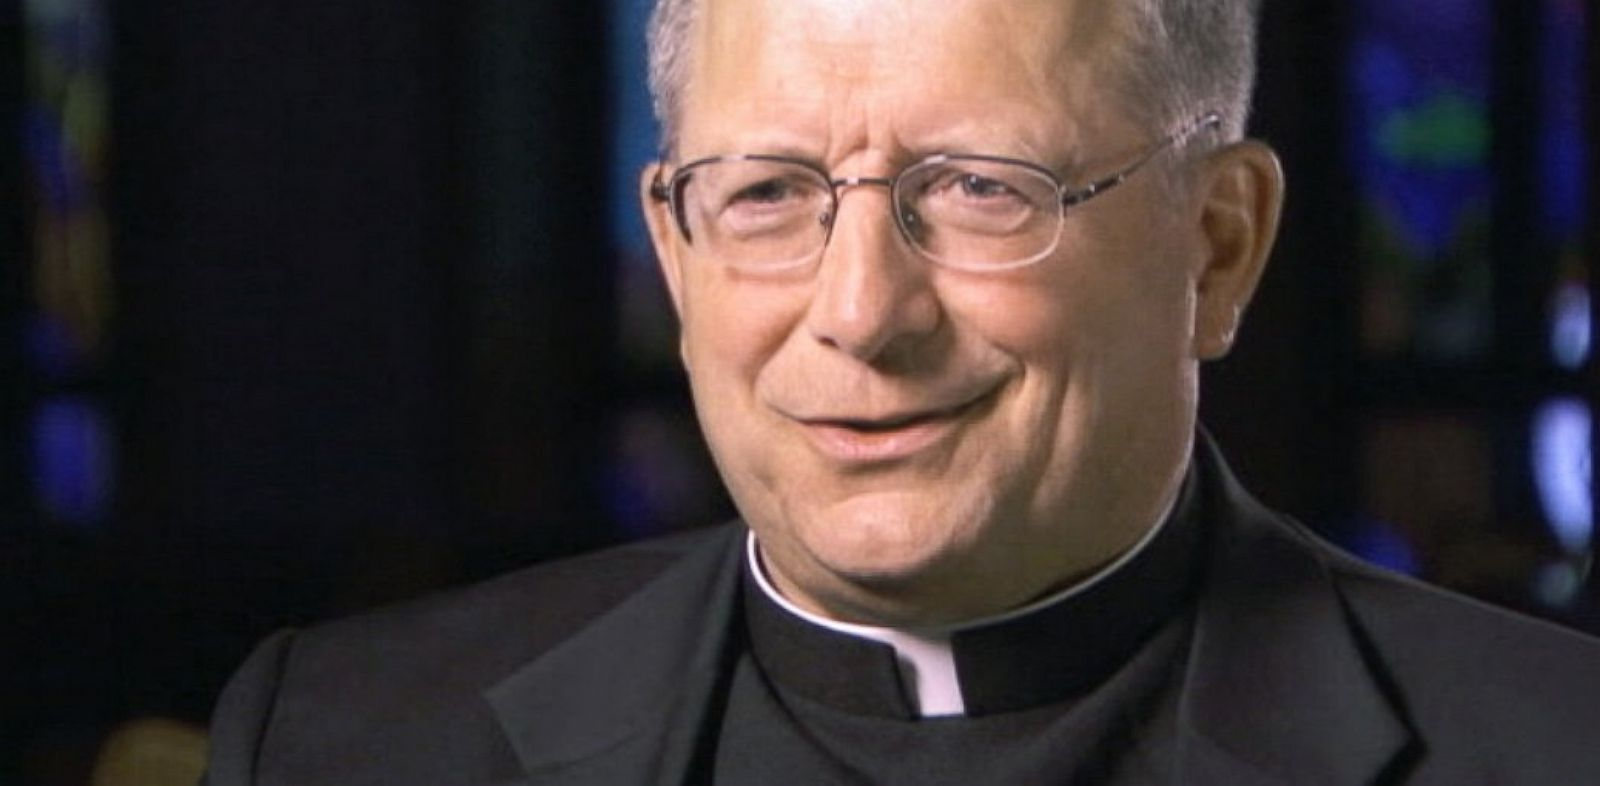 PHOTO: Rev. Patrick Dowling